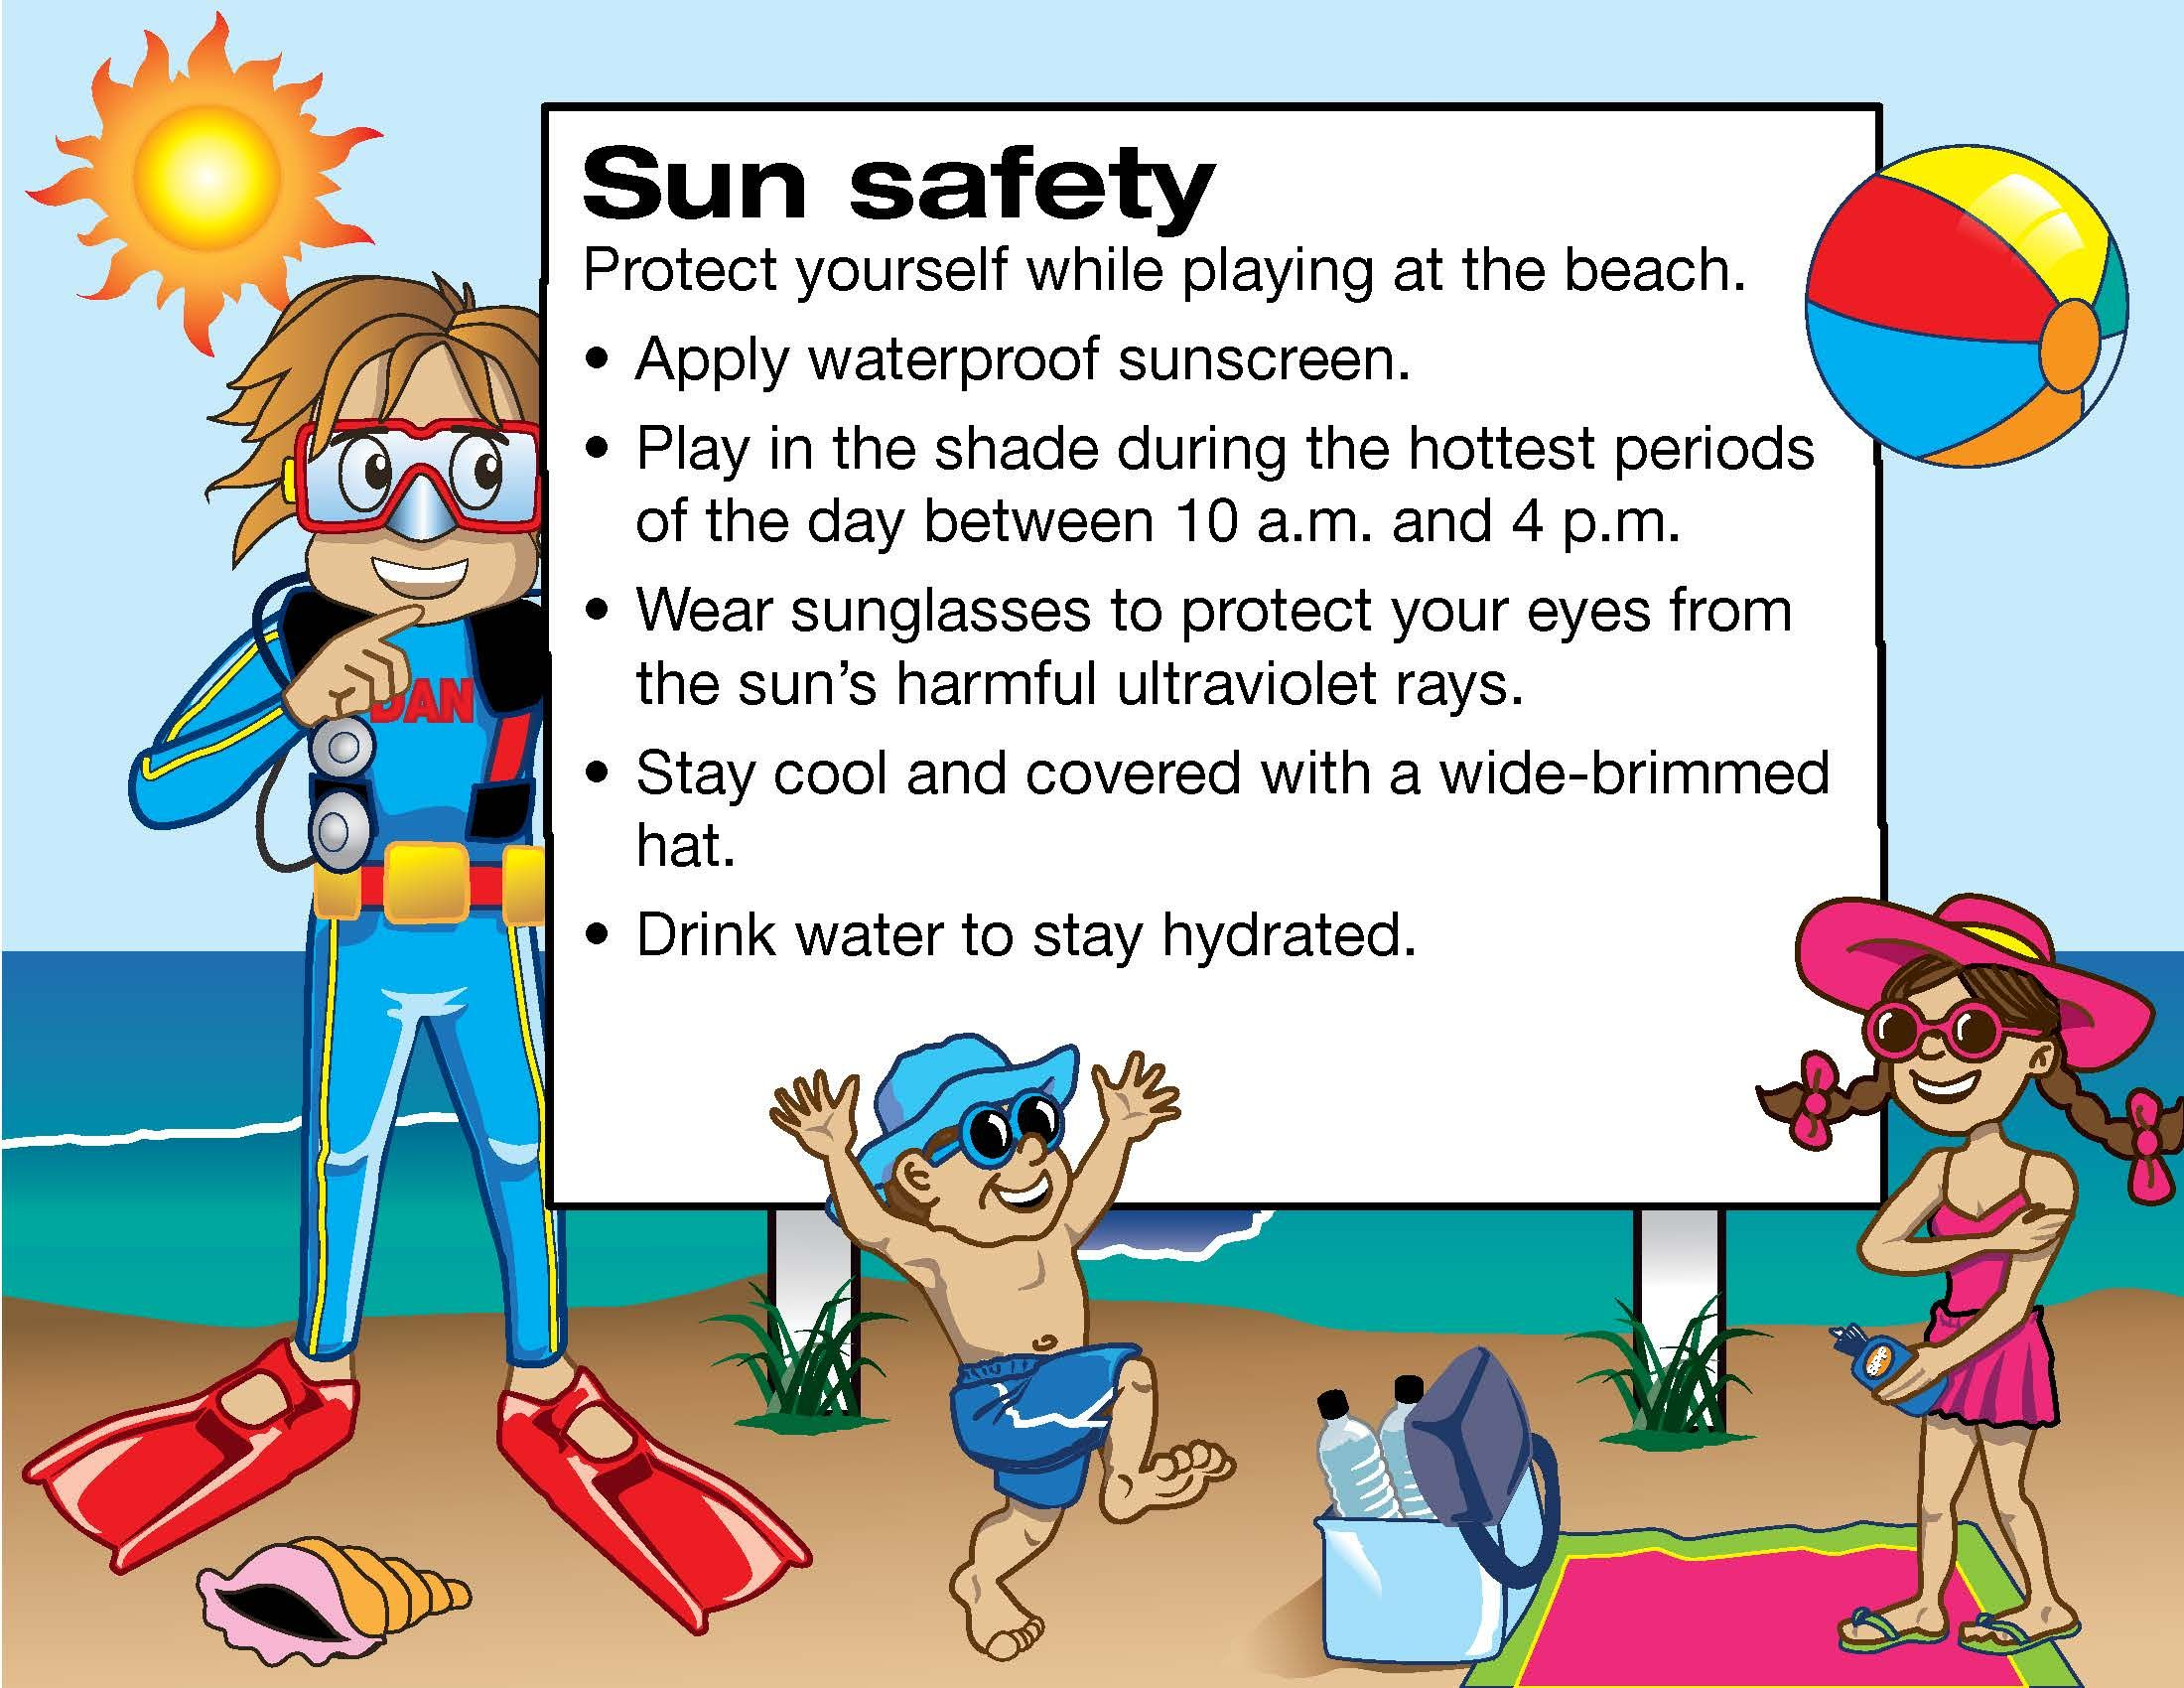 Be Safe in the Sun